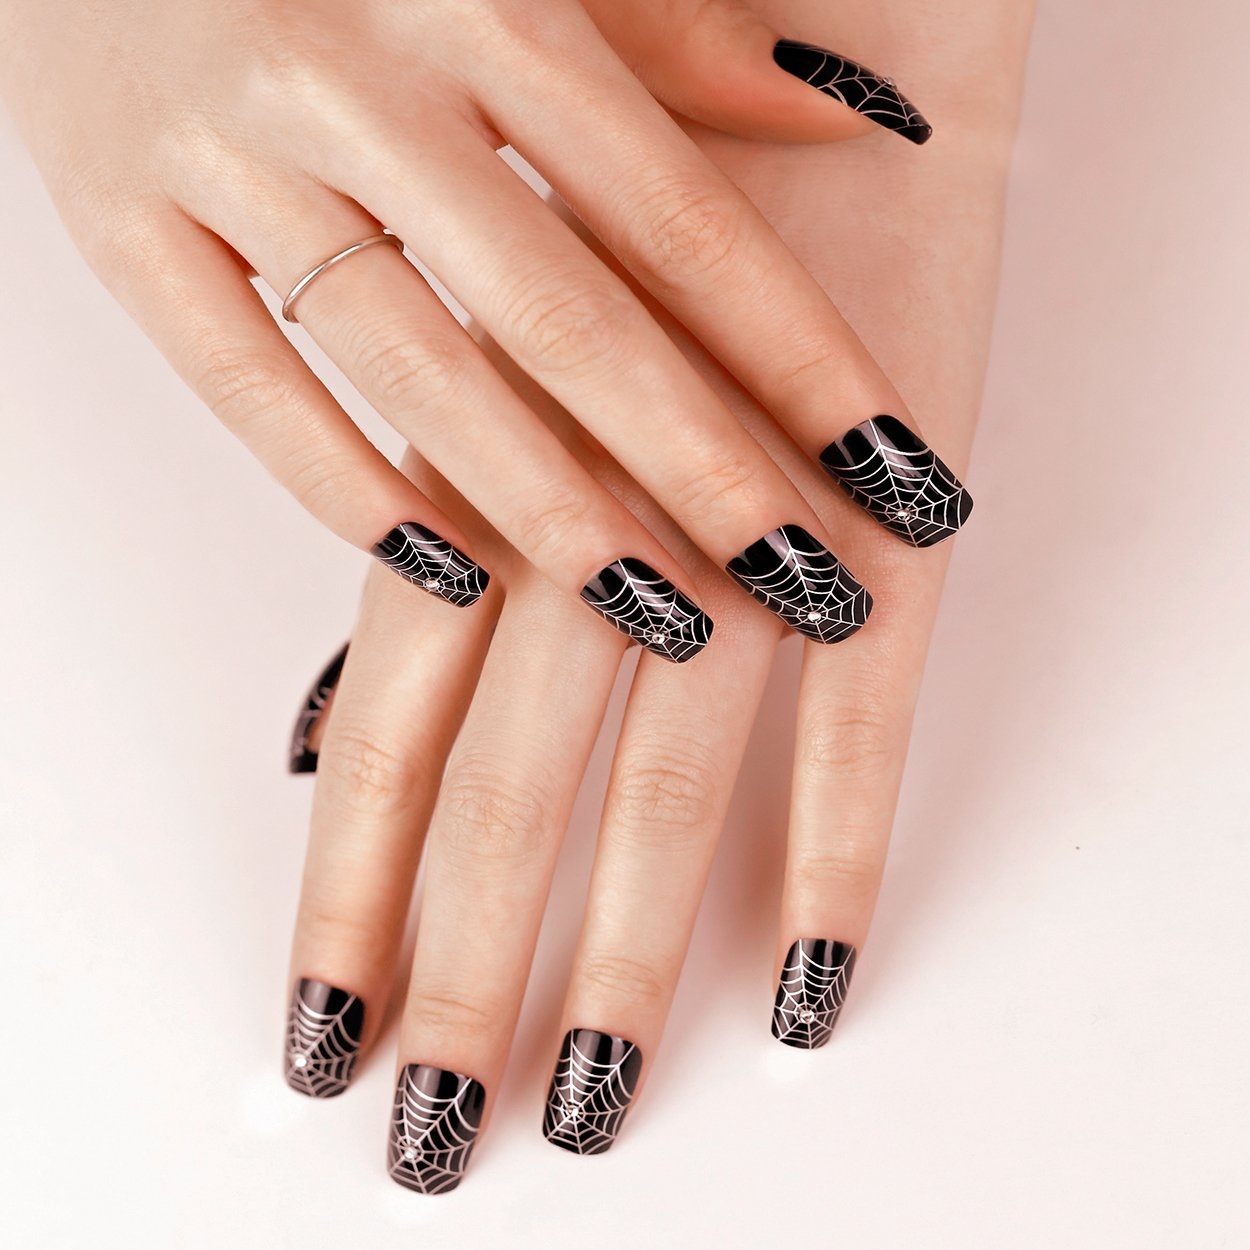 Art Plus 24pcs False Nails French Manicure Full Cover Gothic Black Silver With Crystals Long Length